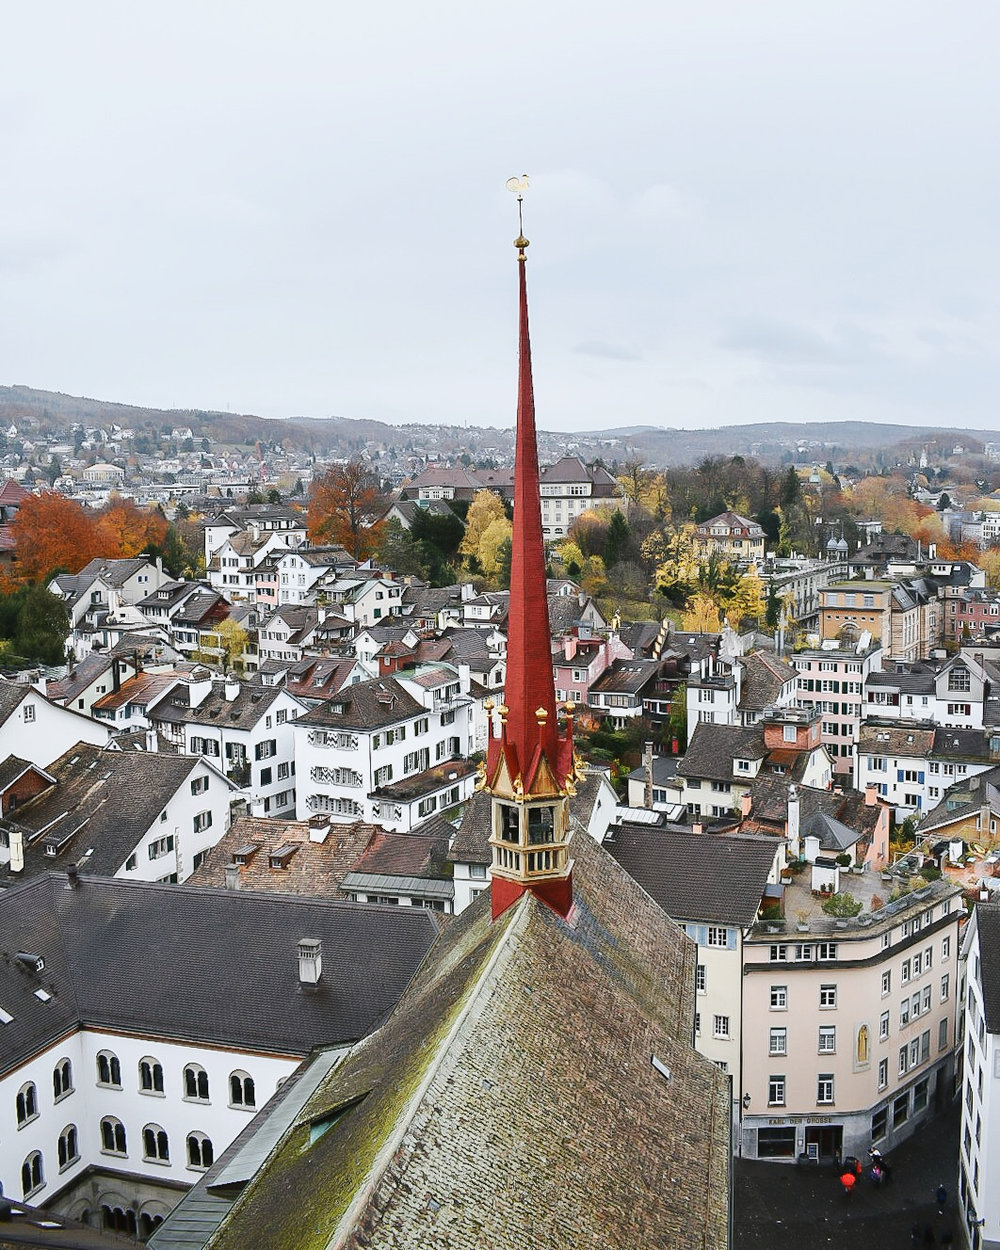 The view from Grossmünster